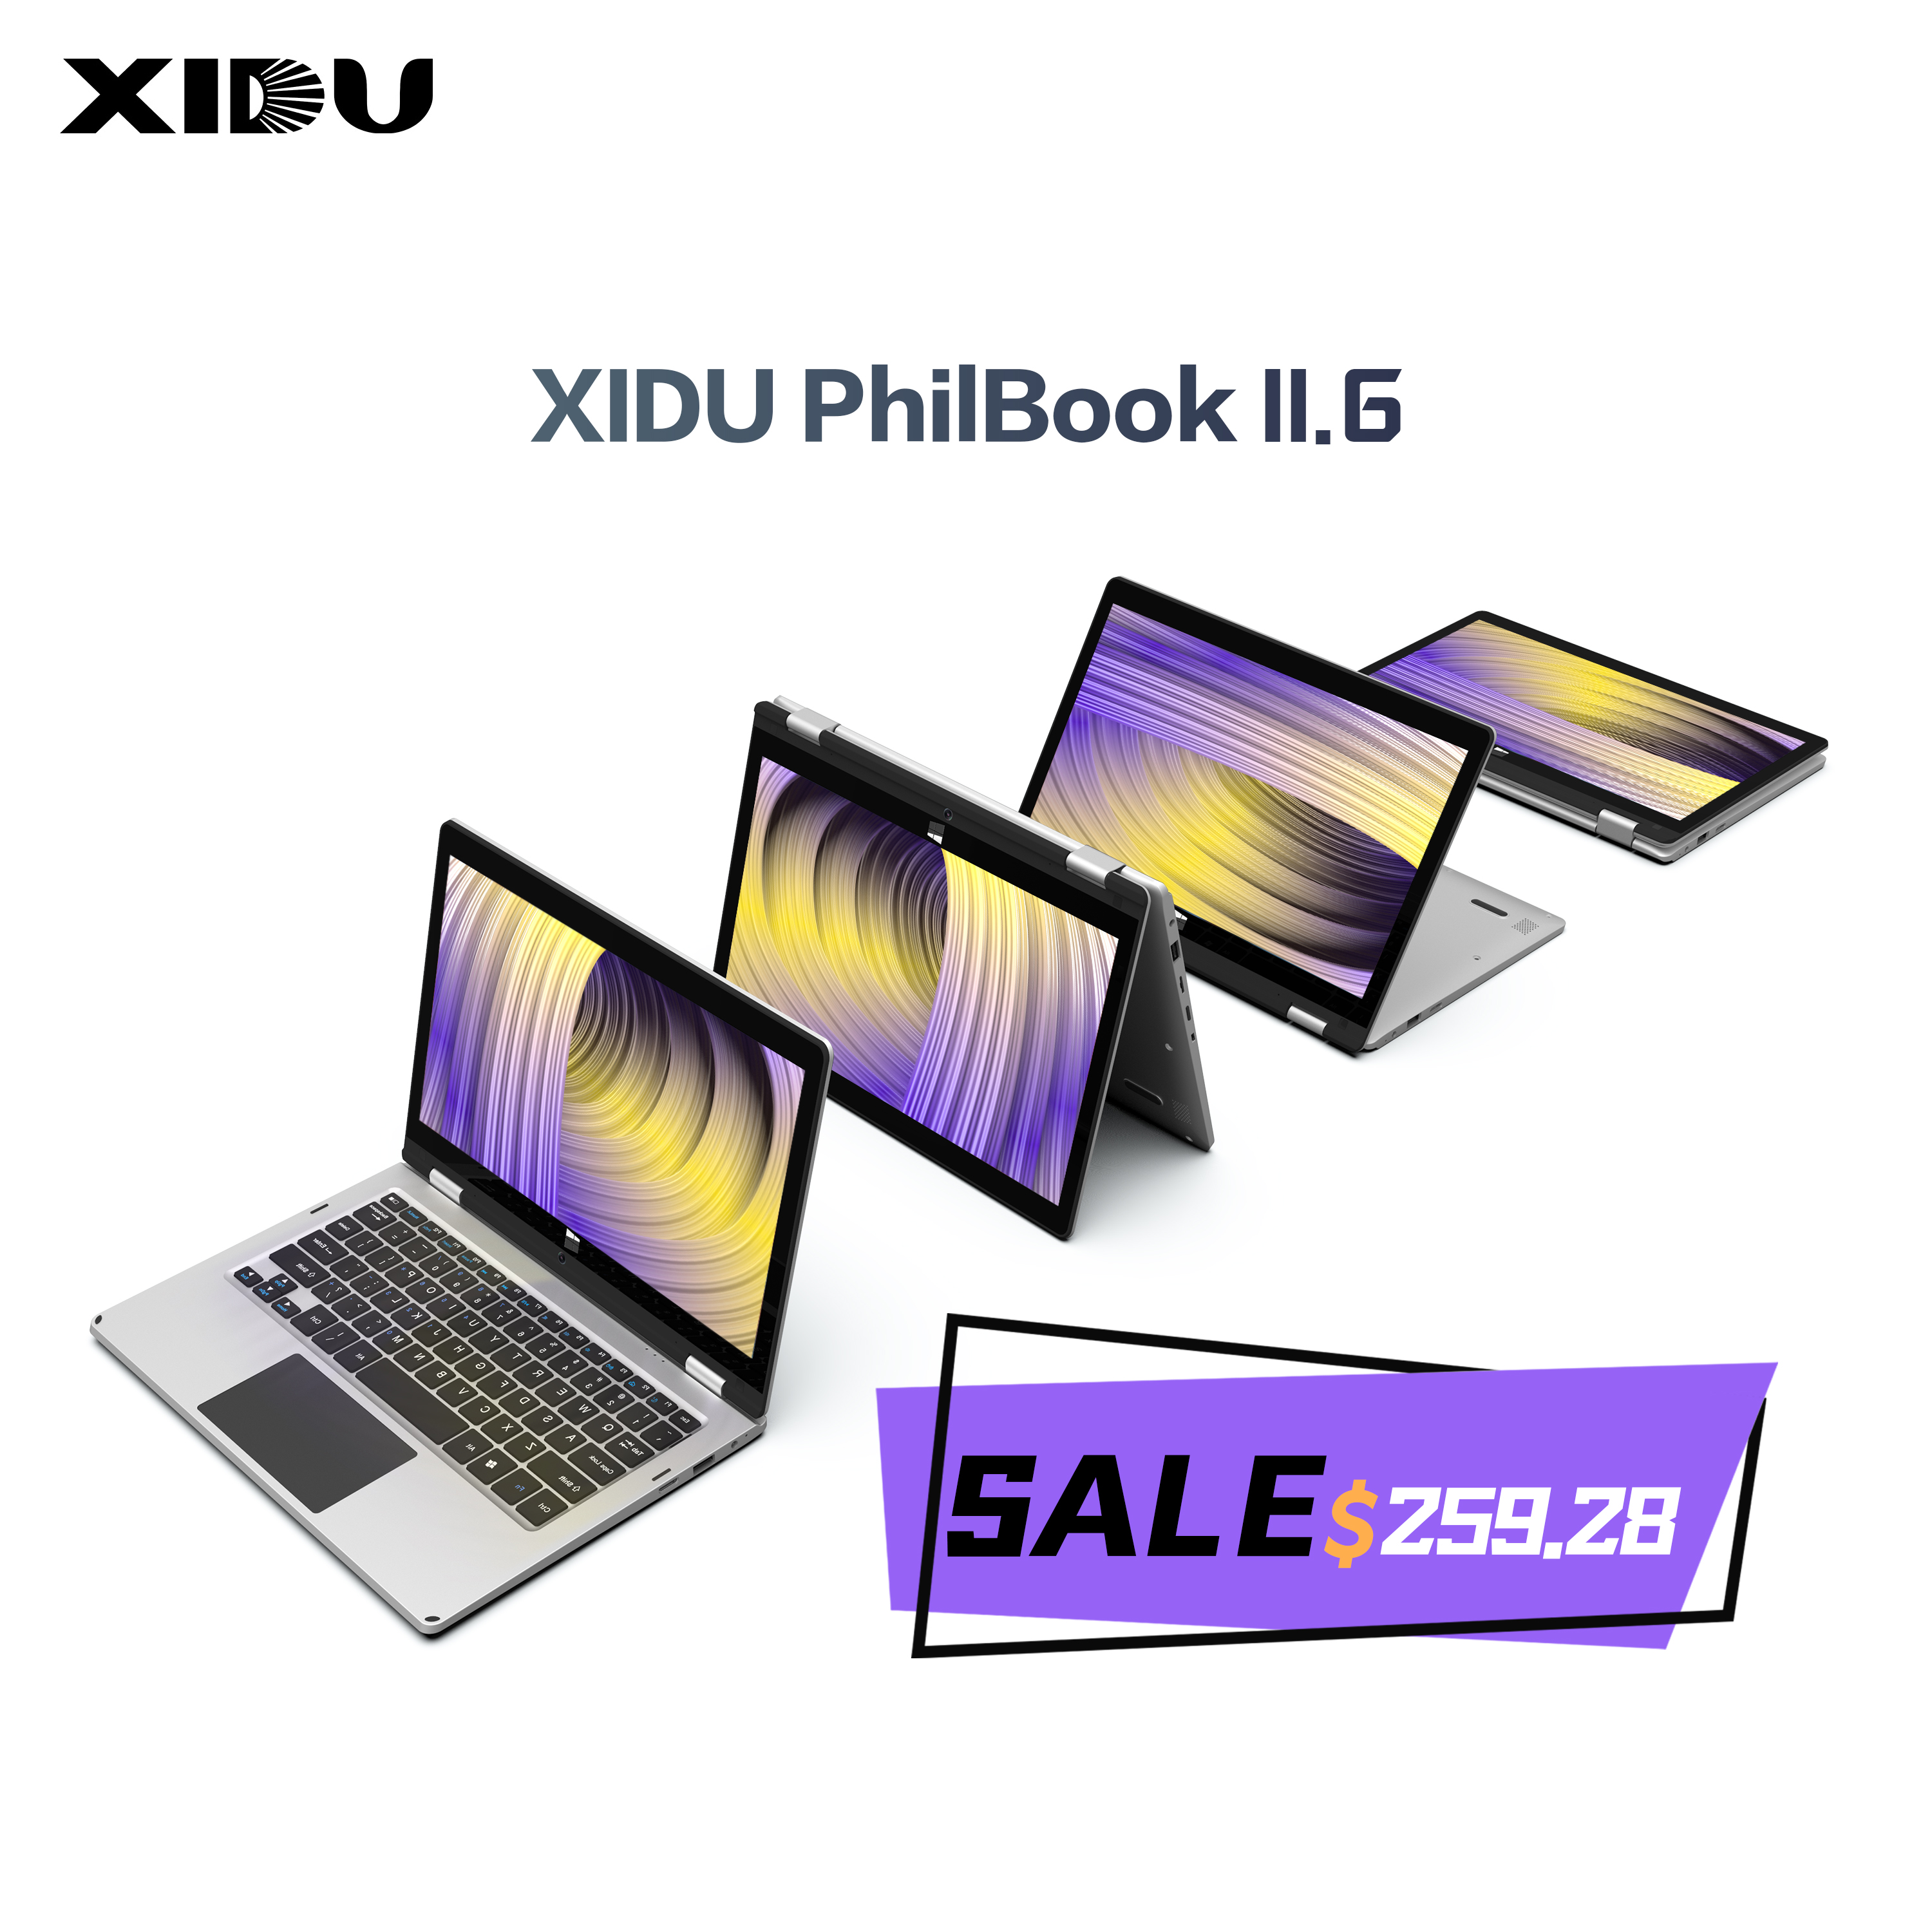 XIDU 11.6 in1 2 Polegada Tablet Touchscreen Laptops notebook 64GB1920x1080 4 Windows10 RAM GB ROM Intel Cereja Julgamento Z8350 Quad núcleo